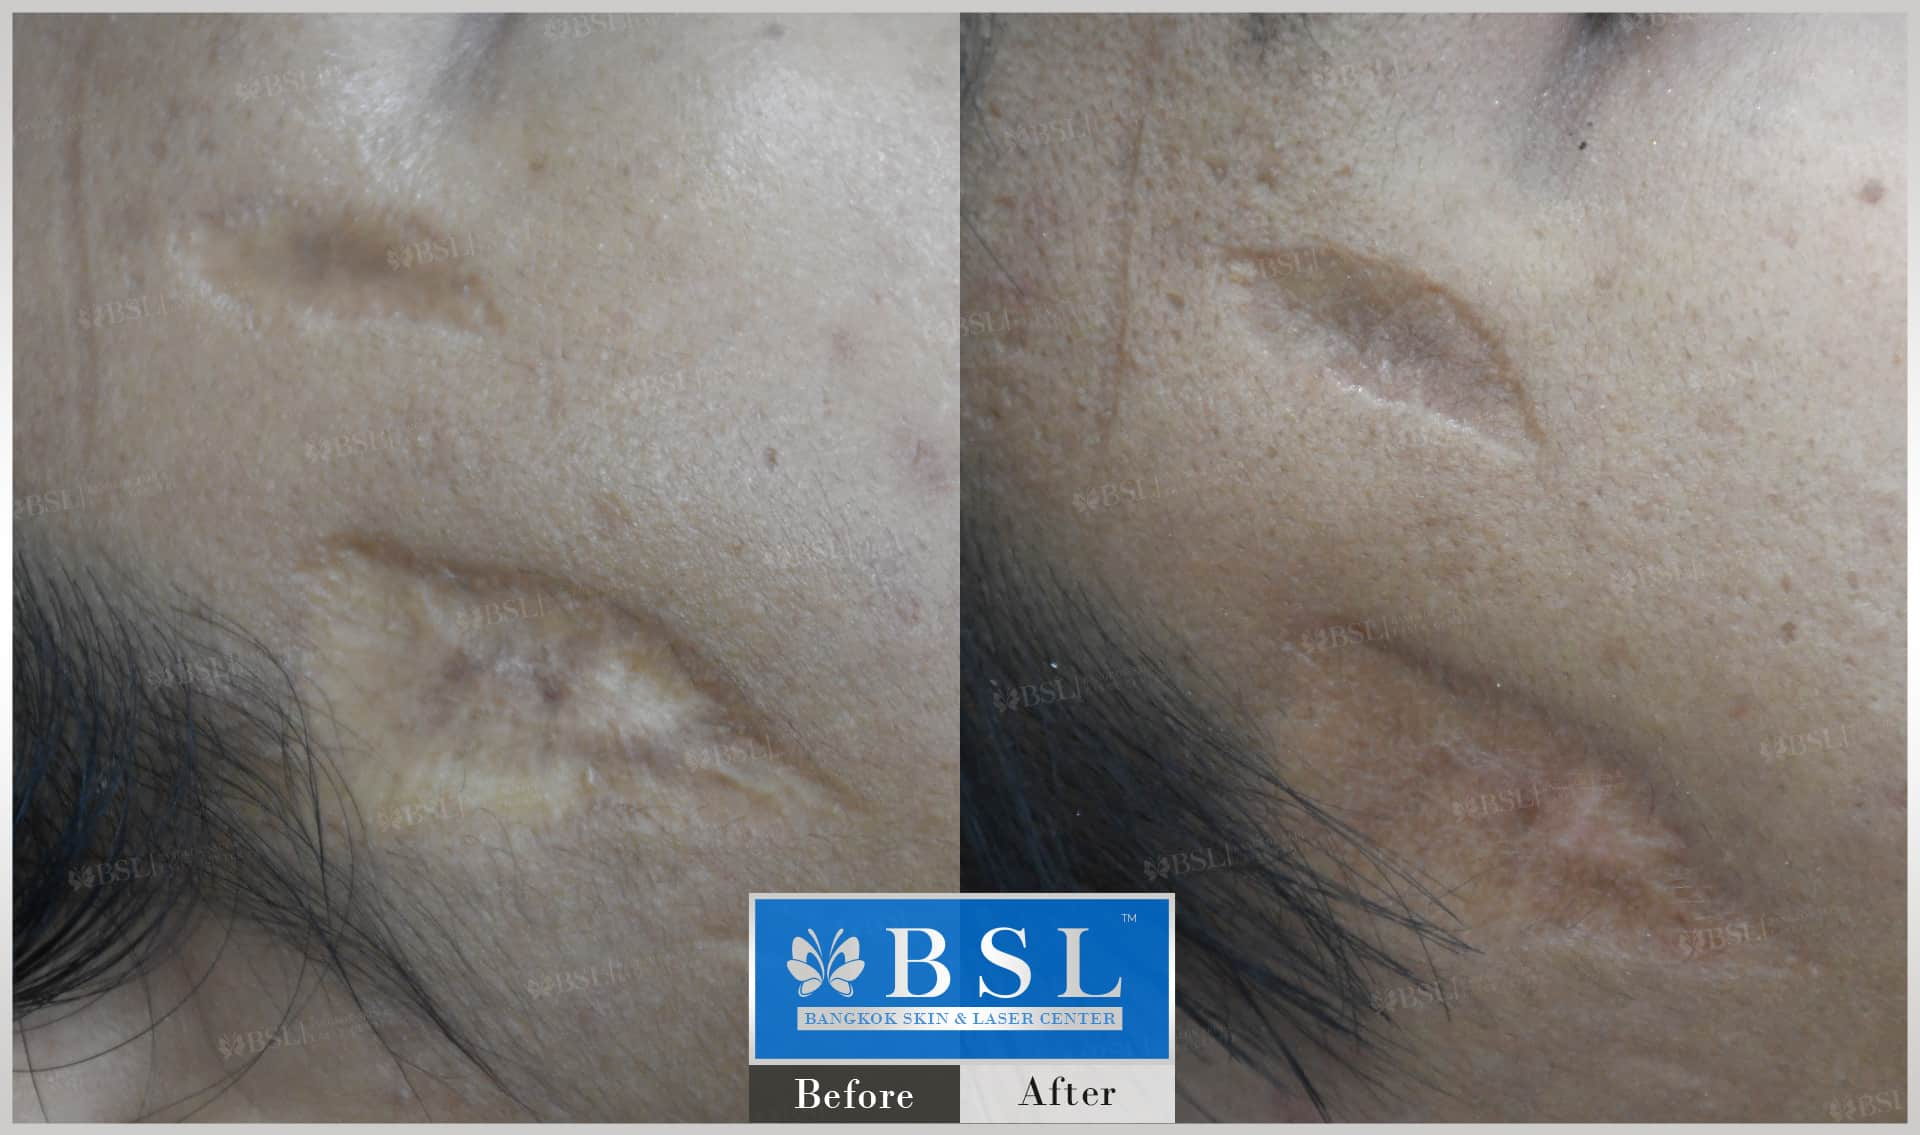 before-after-results-scar-treatment-015